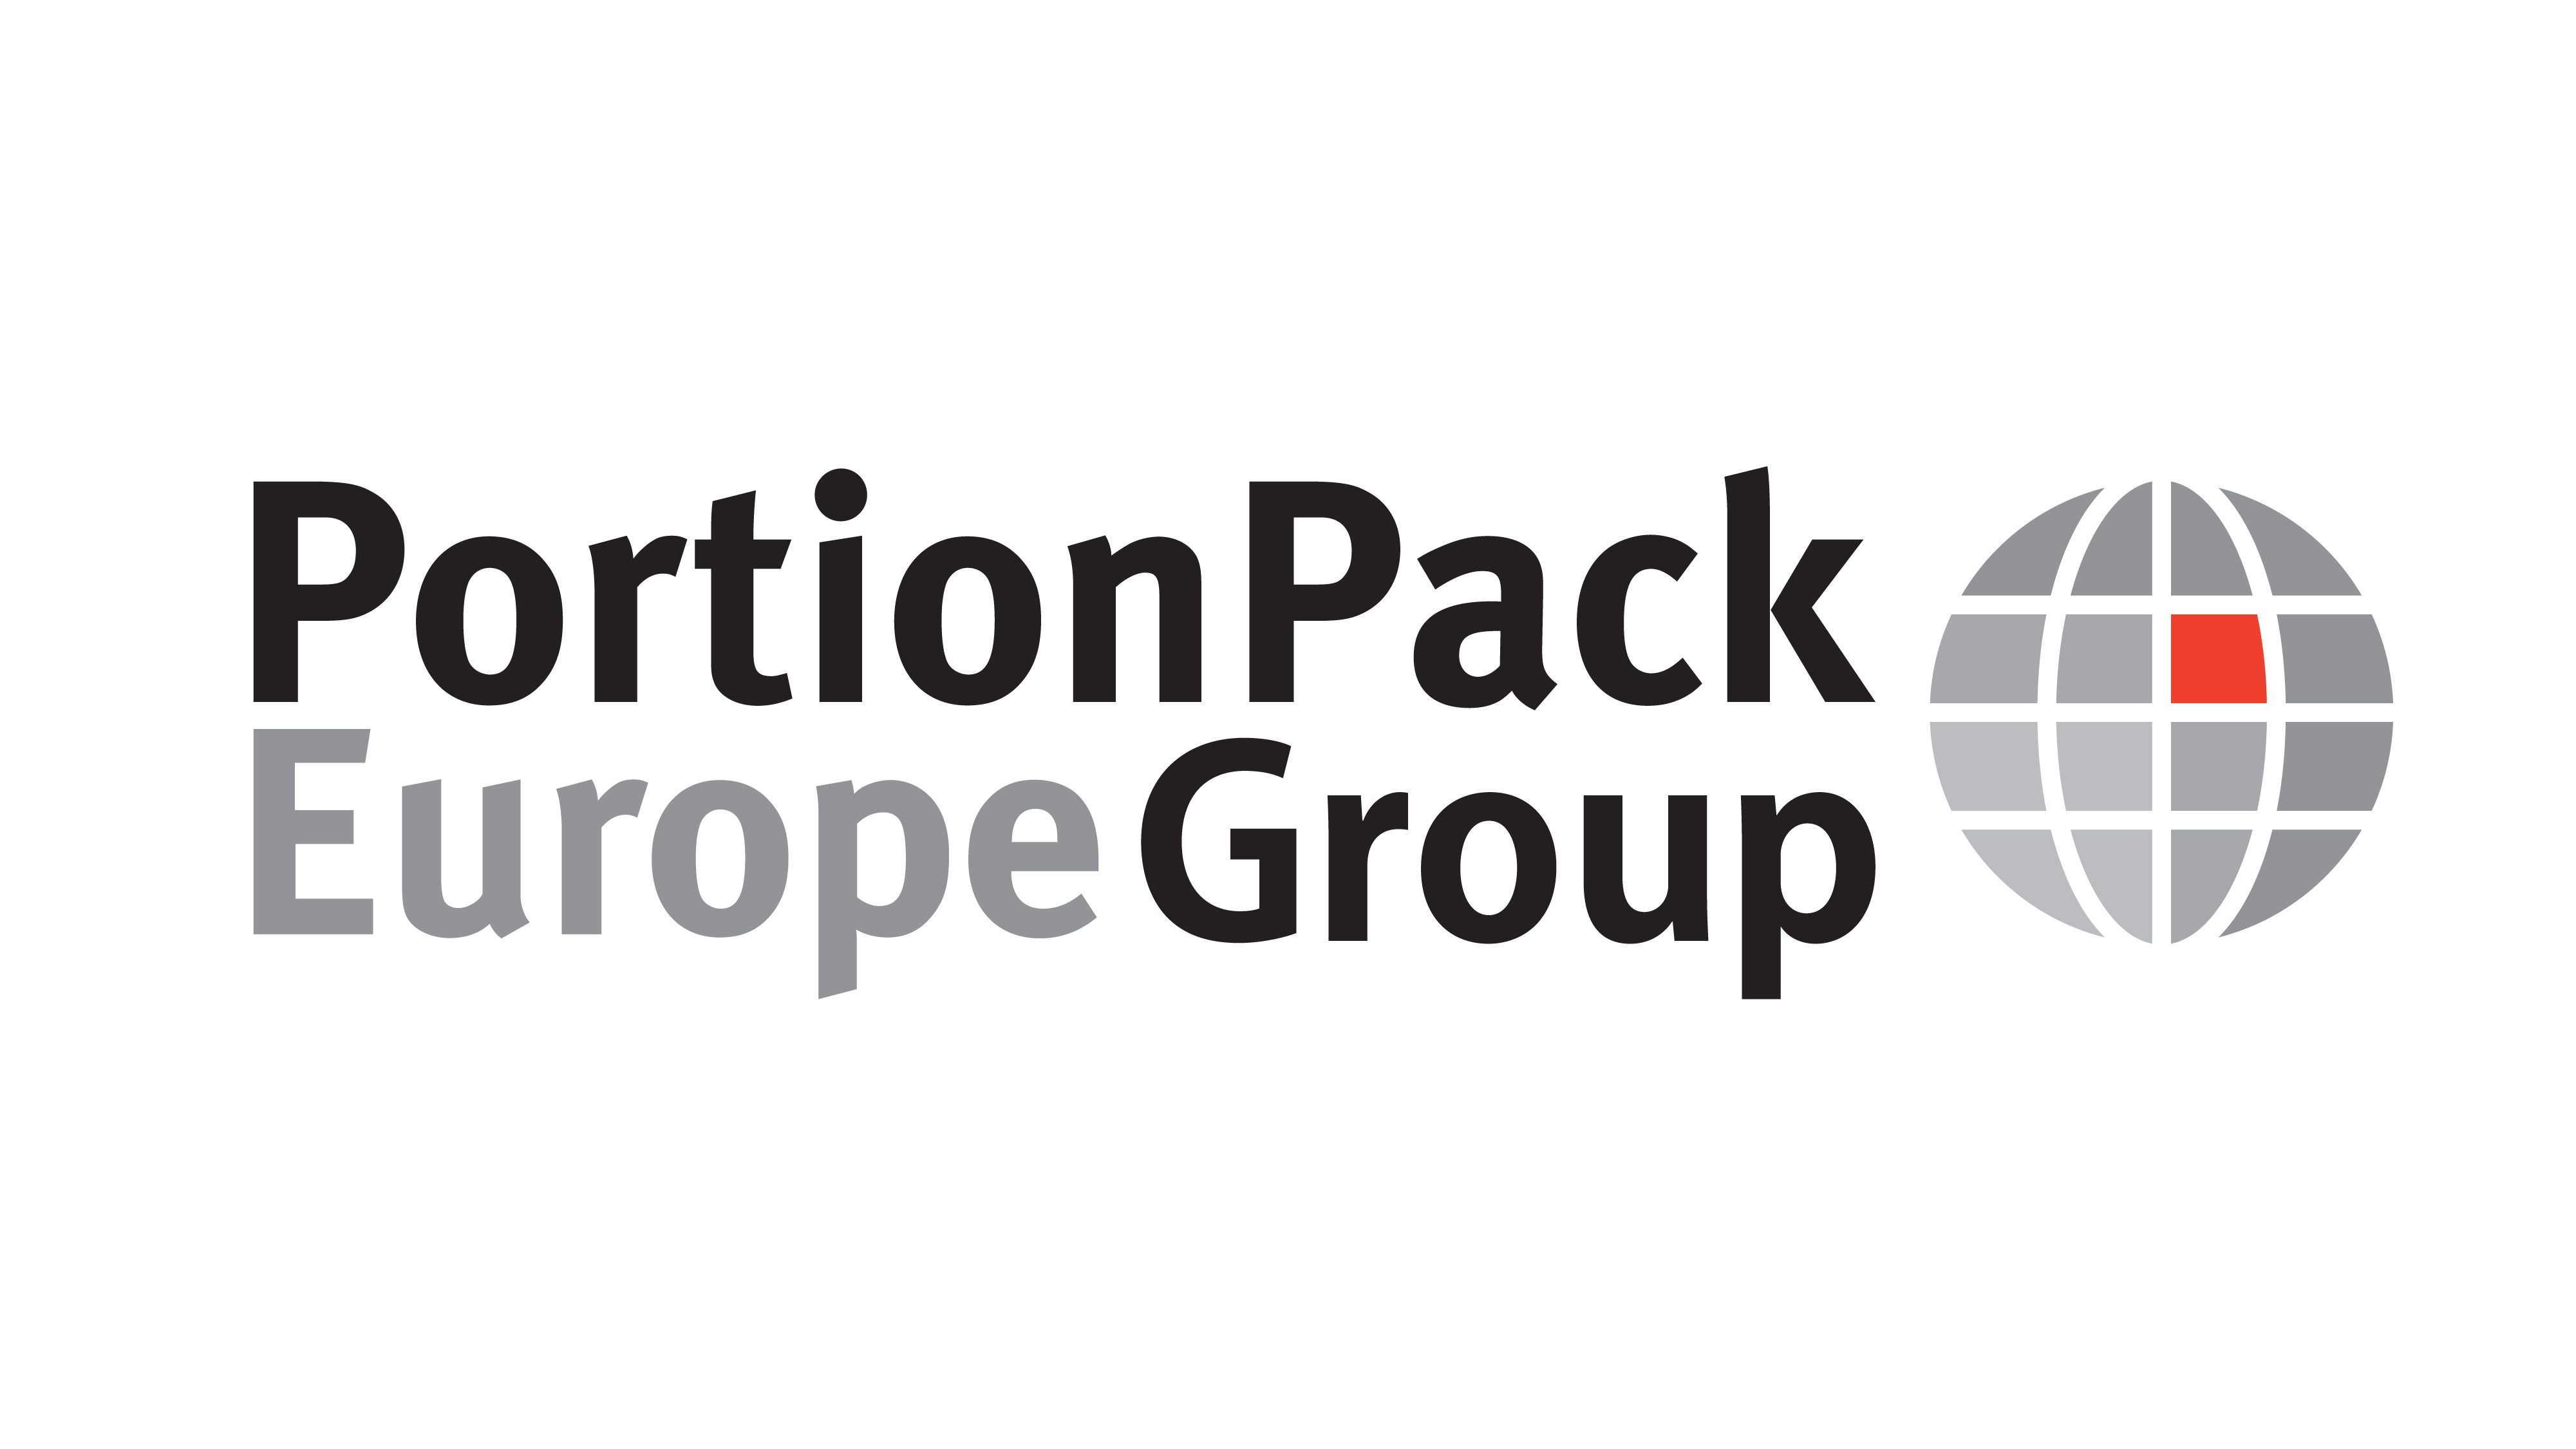 Portionpack Europe Group Has Acquired Custompack Limited